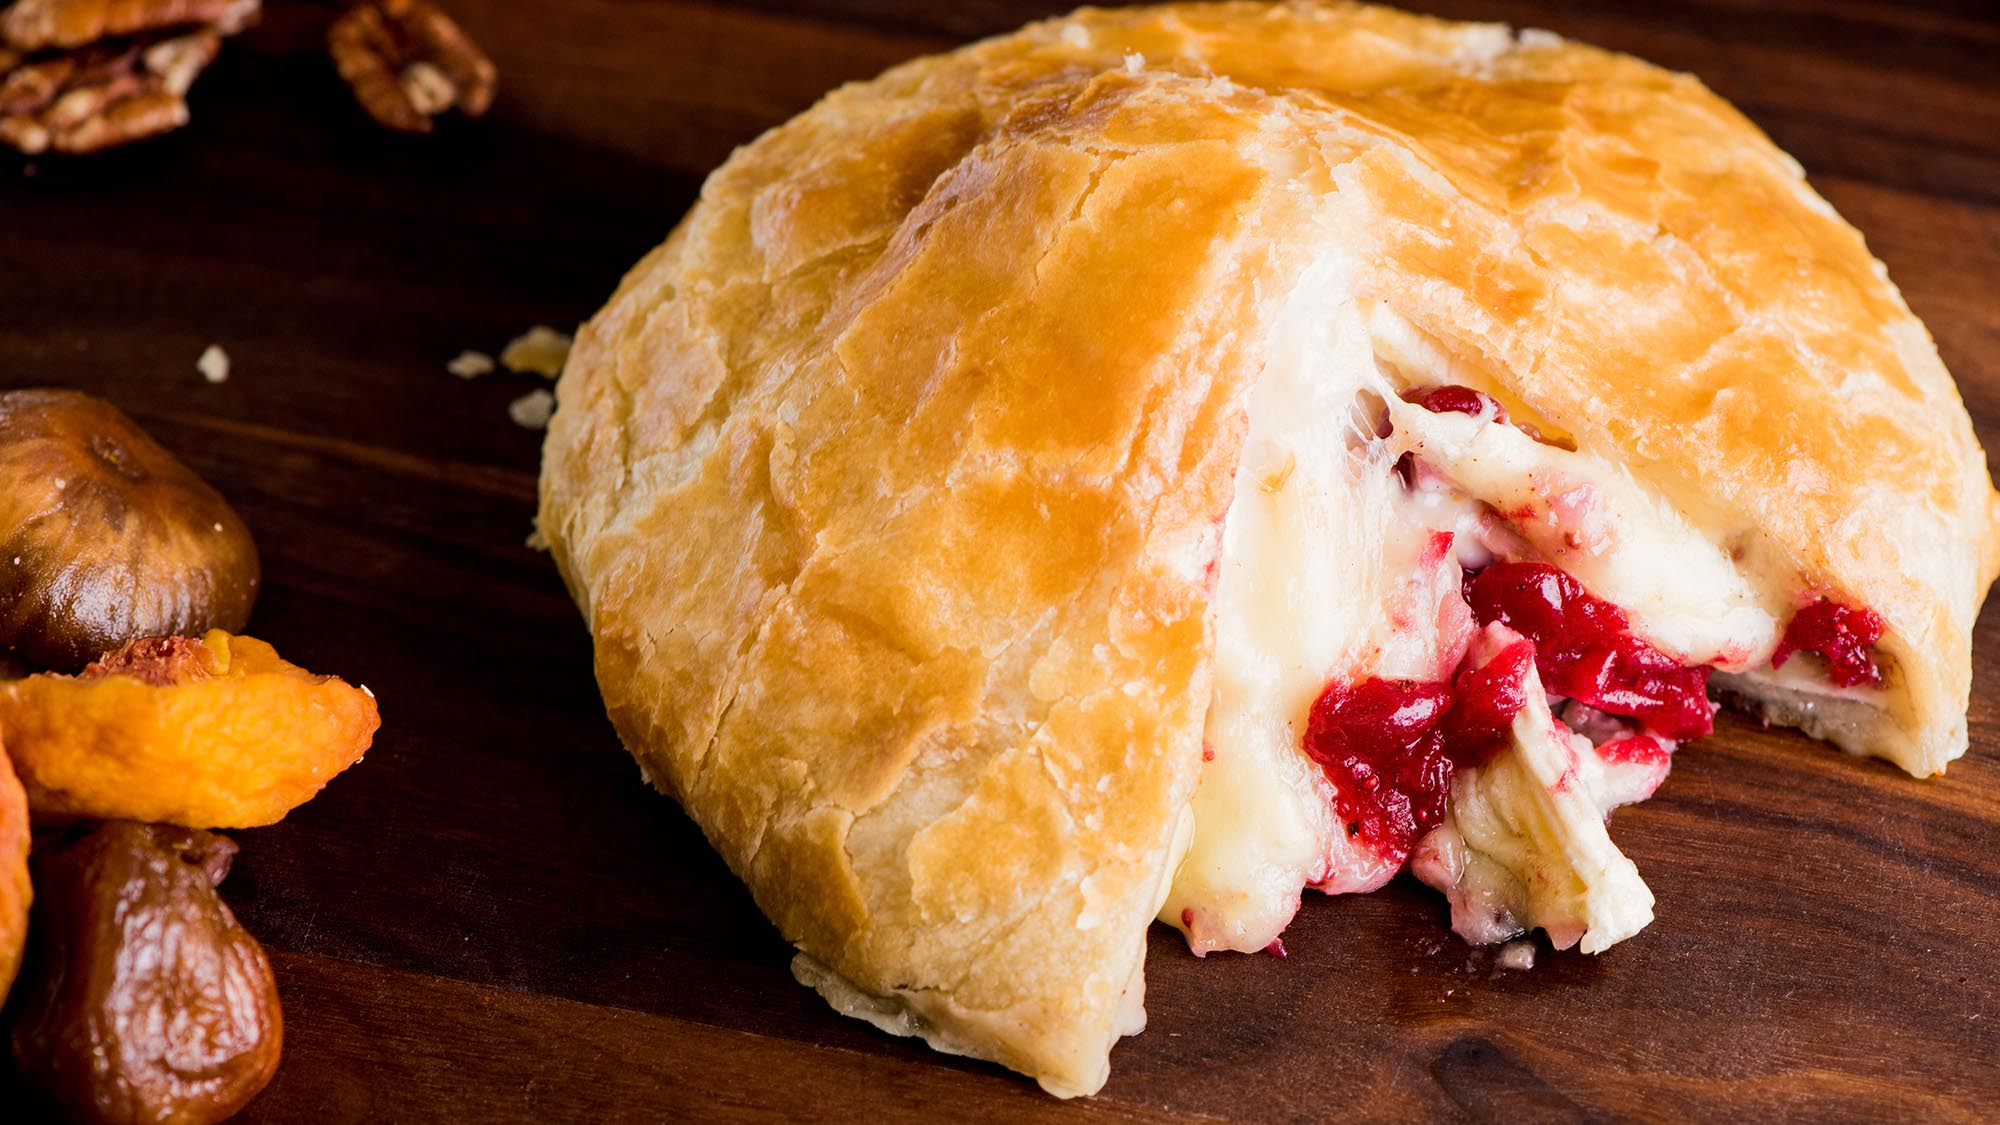 McCormick Baked Brie with Cranberry Chutney